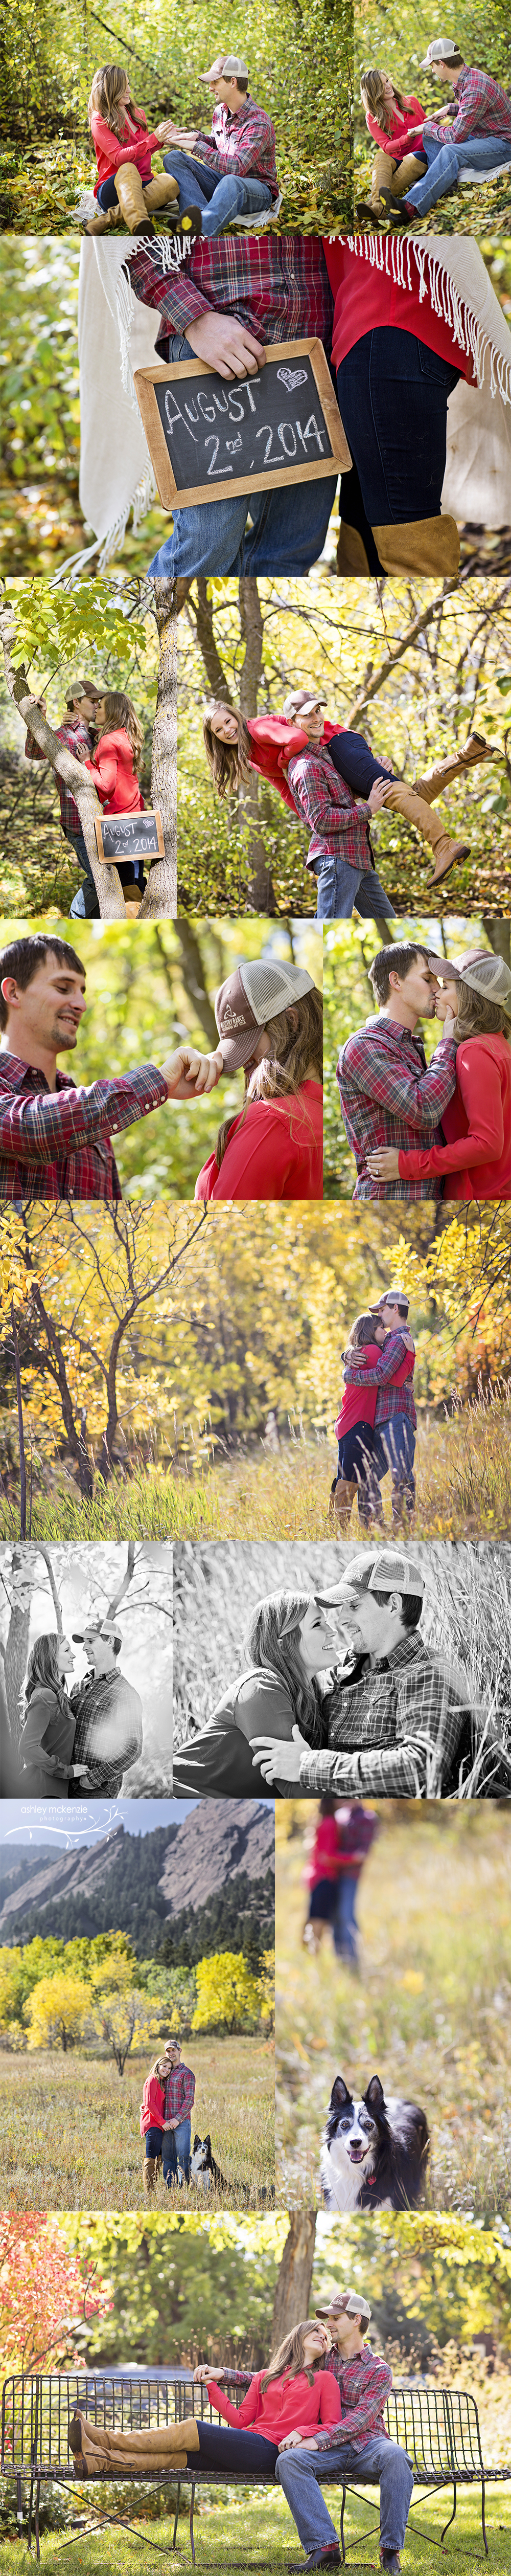 Engagement Photography By Ashley McKenzie Photography at Chataqua Park in Boulder, CO